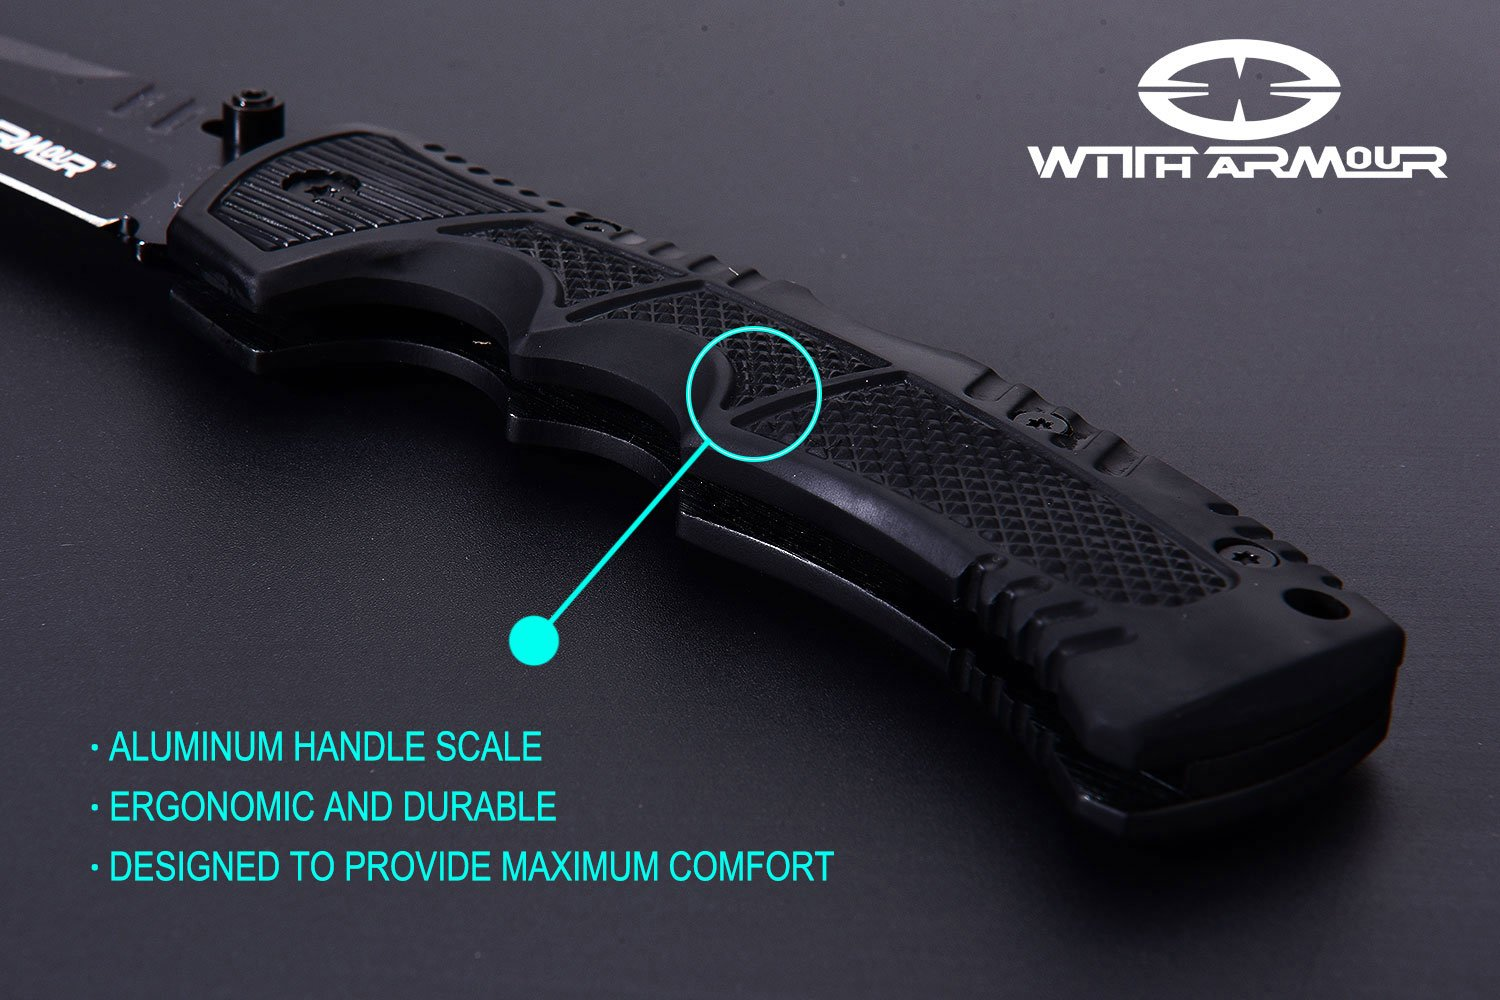 WITHARMOUR Back Lock 440C Stainless Steel Best Pocket Folding Knife Racketeer for Men and Black Aluminum Handle with Nylon Sheath for Tactical Outdoor Survival Camping and Self Defense 5-inch closed by WITHARMOUR (Image #5)